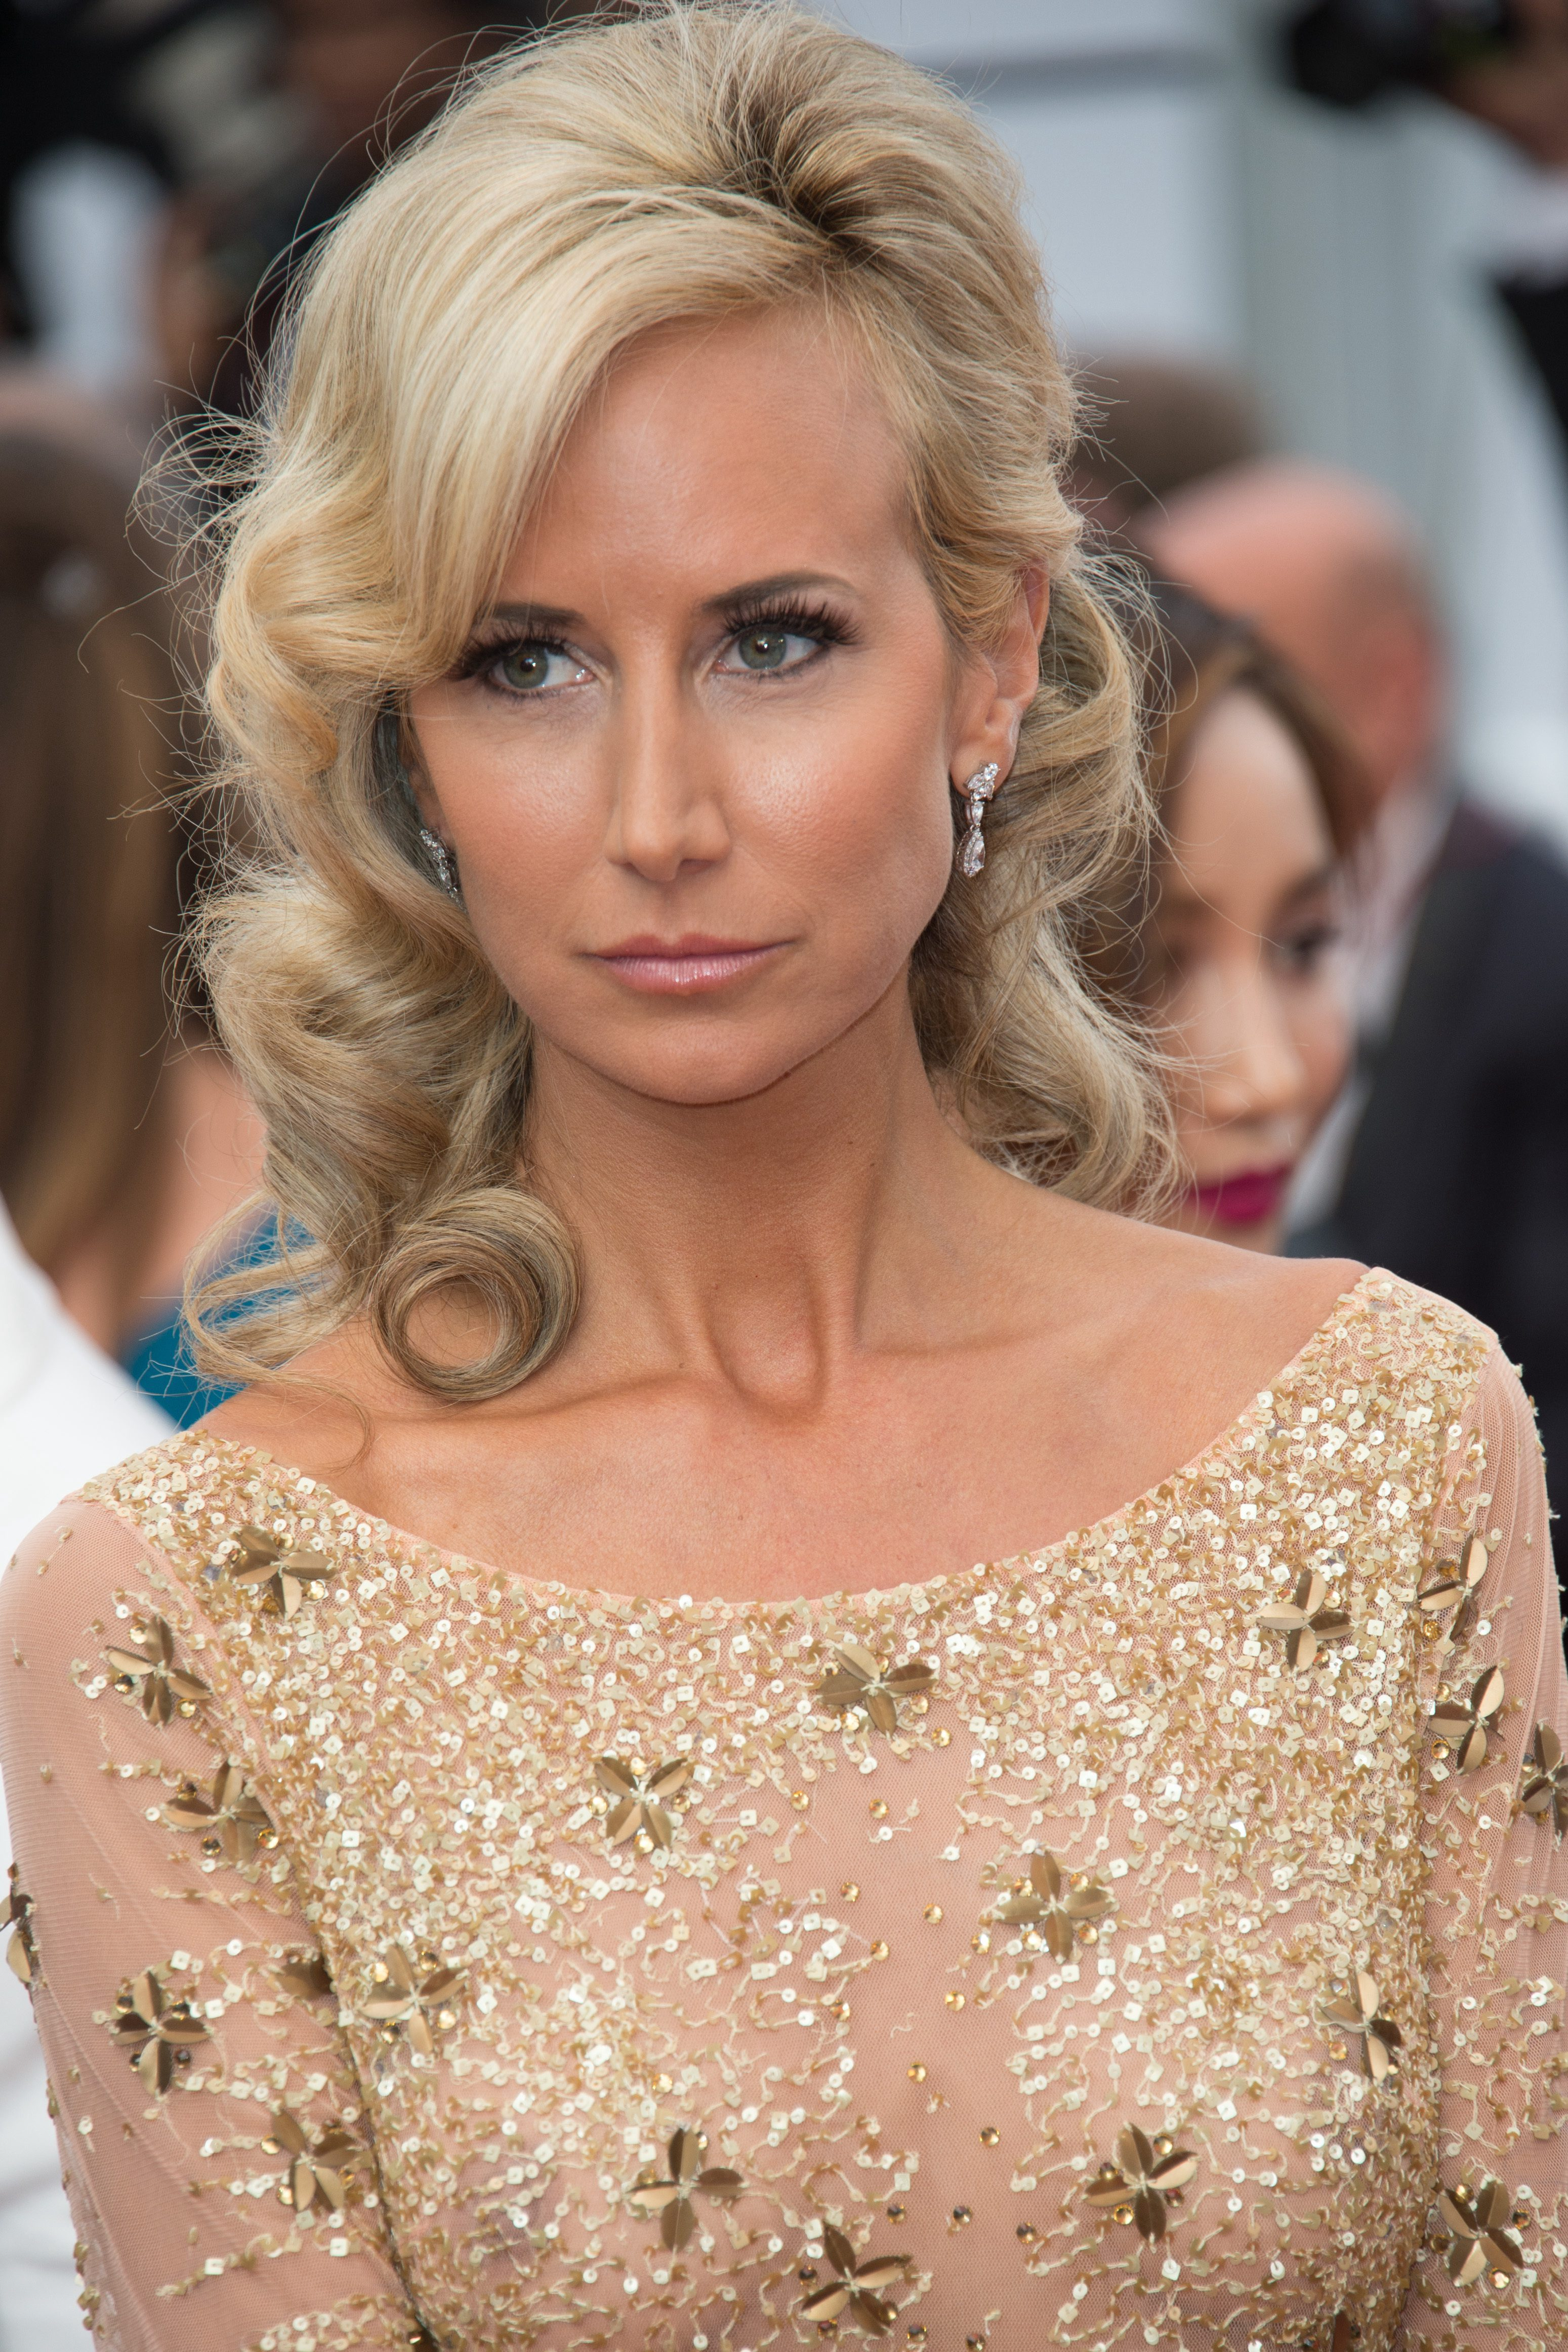 Lady Victoria Hervey with that Thick Hair Curly Shag